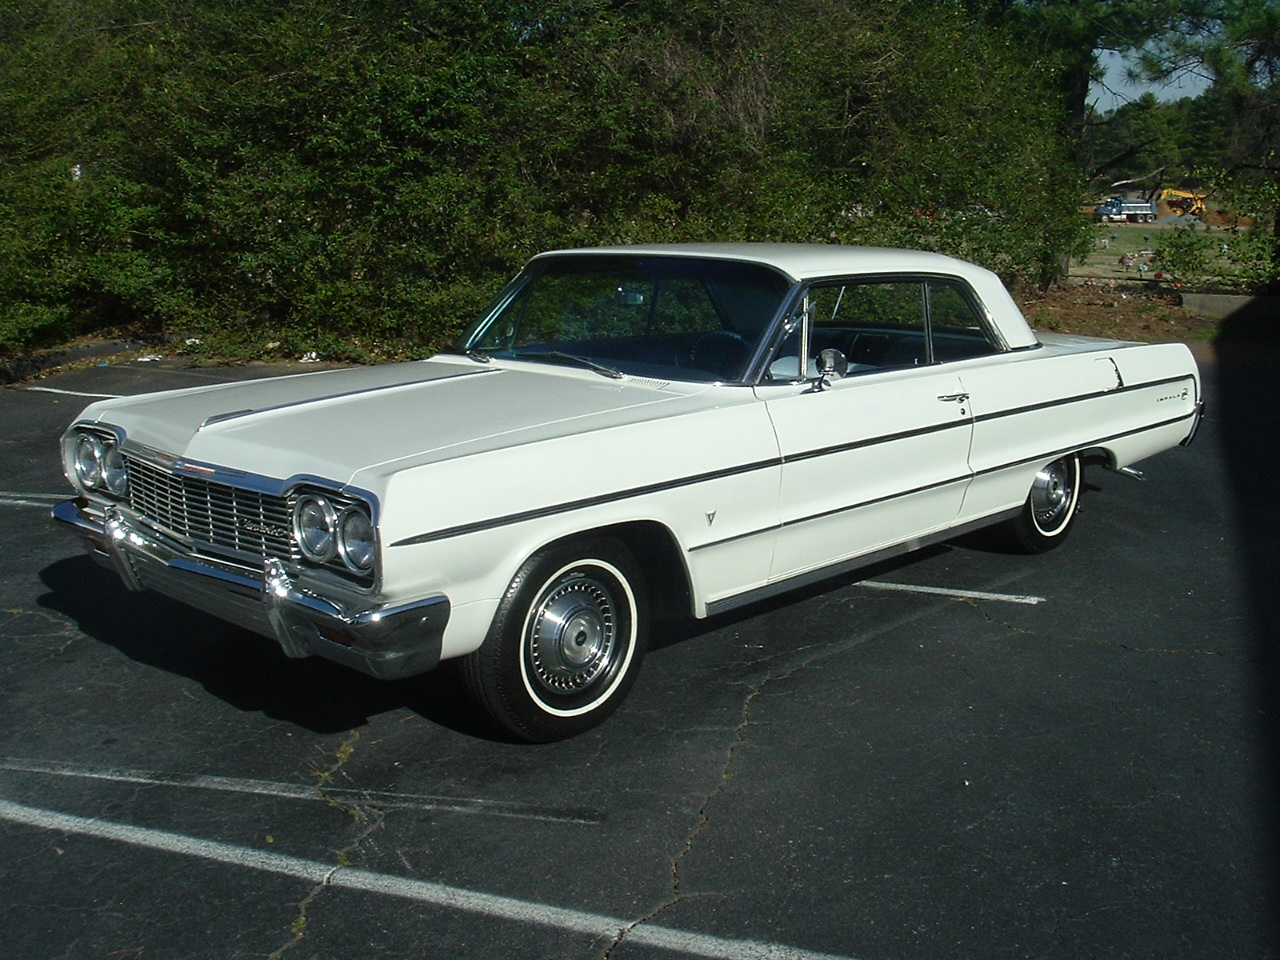 1964 Impala Two Door Hardtop White (1)